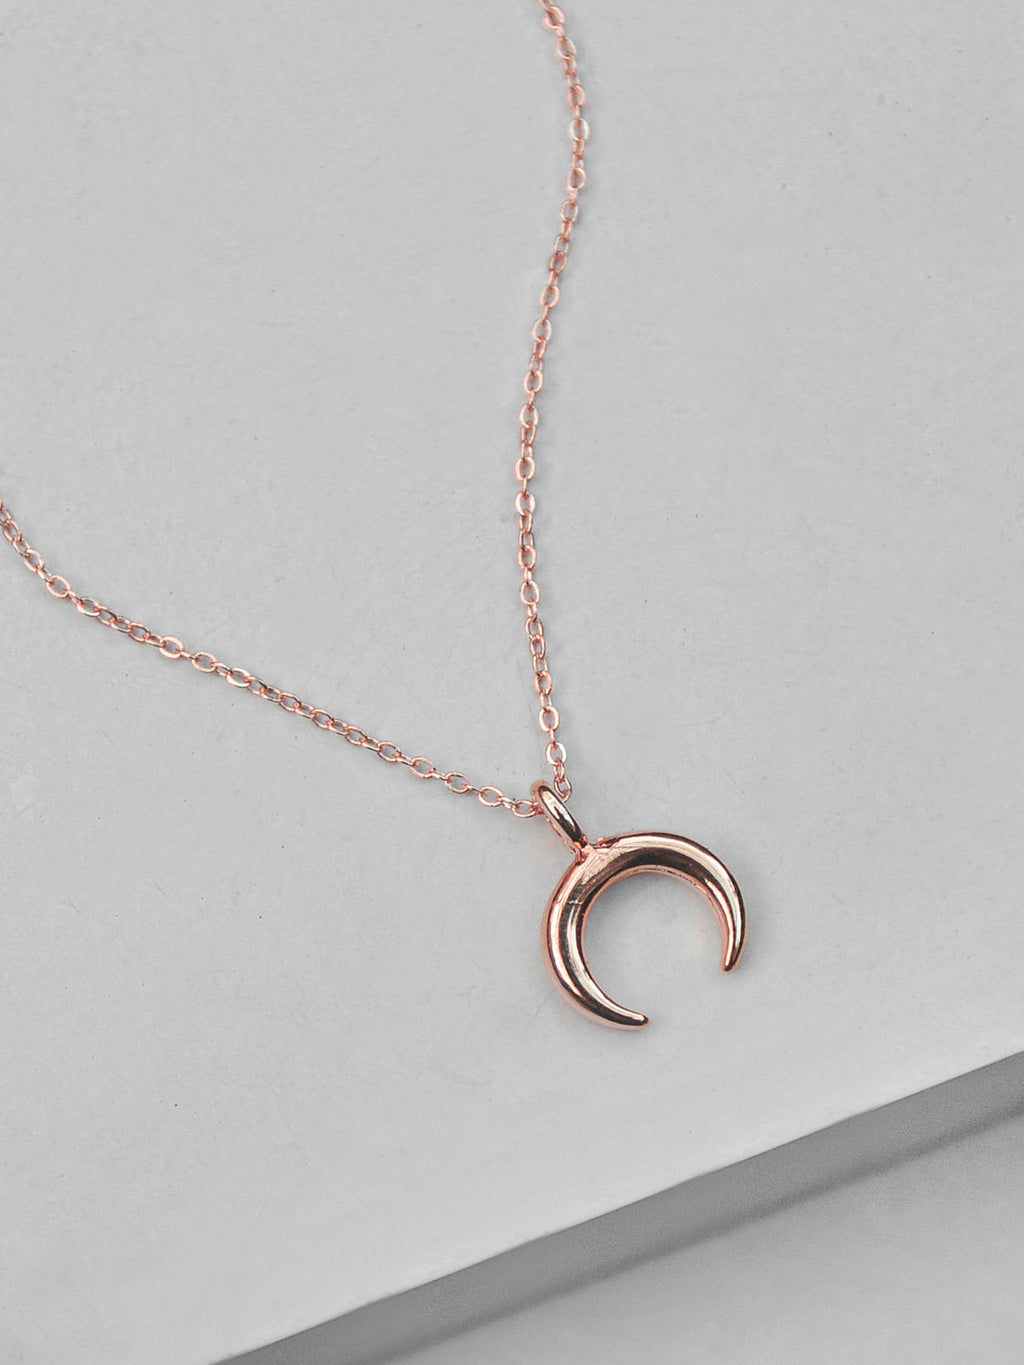 Small Rose Gold Moon Charm Necklace by The Faint Hearted Jewelry